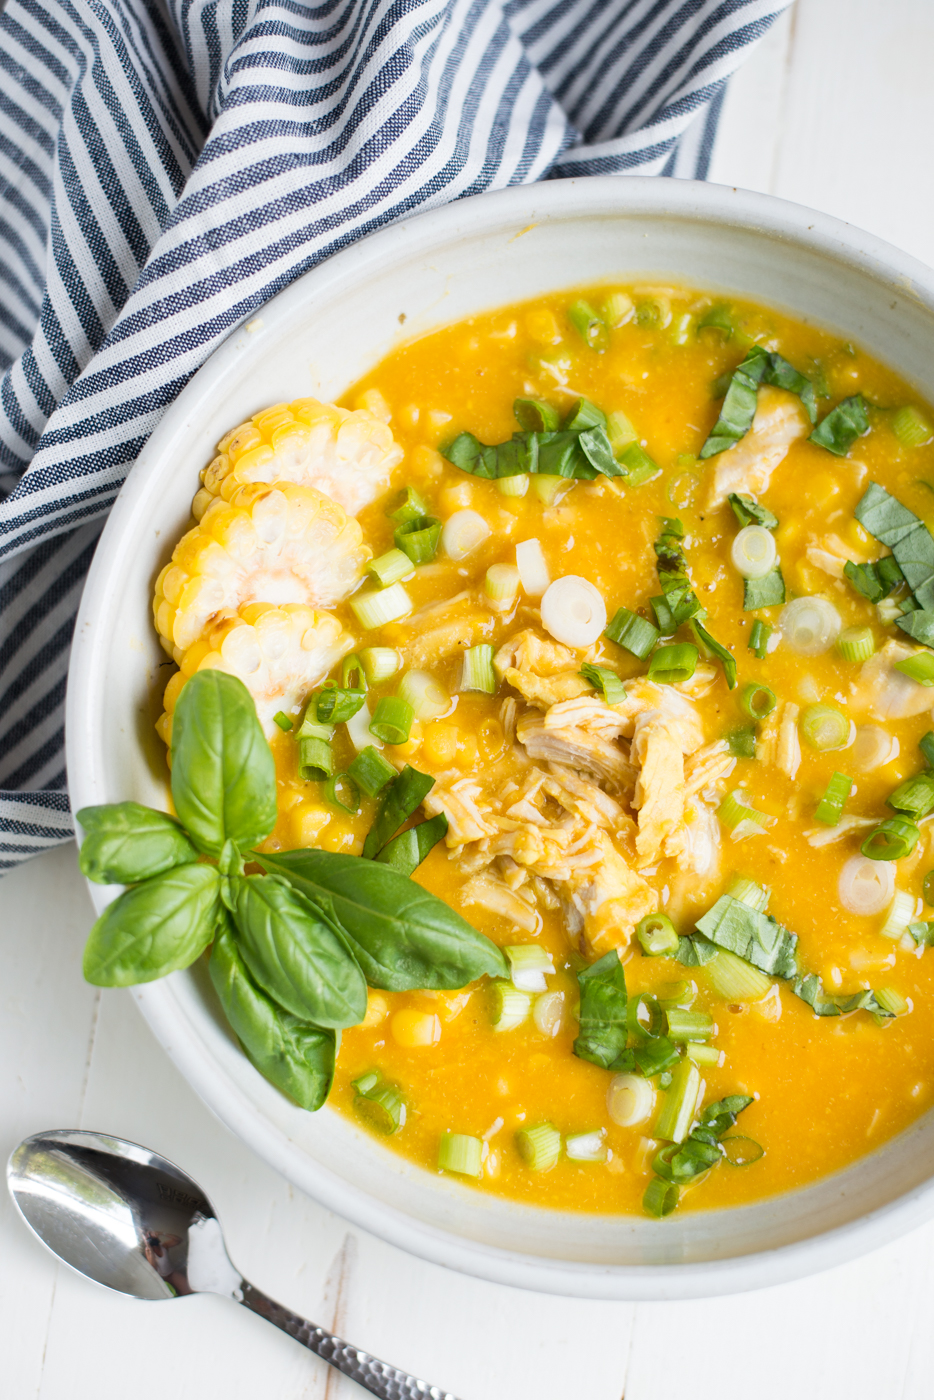 Instant Pot Creamy Chicken Corn Chowder (Dairy-Free) is a simple, healthy, and totally delicious one-pot recipe everyone will love! This healthy recipe is gluten-free, dairy-free, egg-free, mayo-free, nut-free, and soy-free!